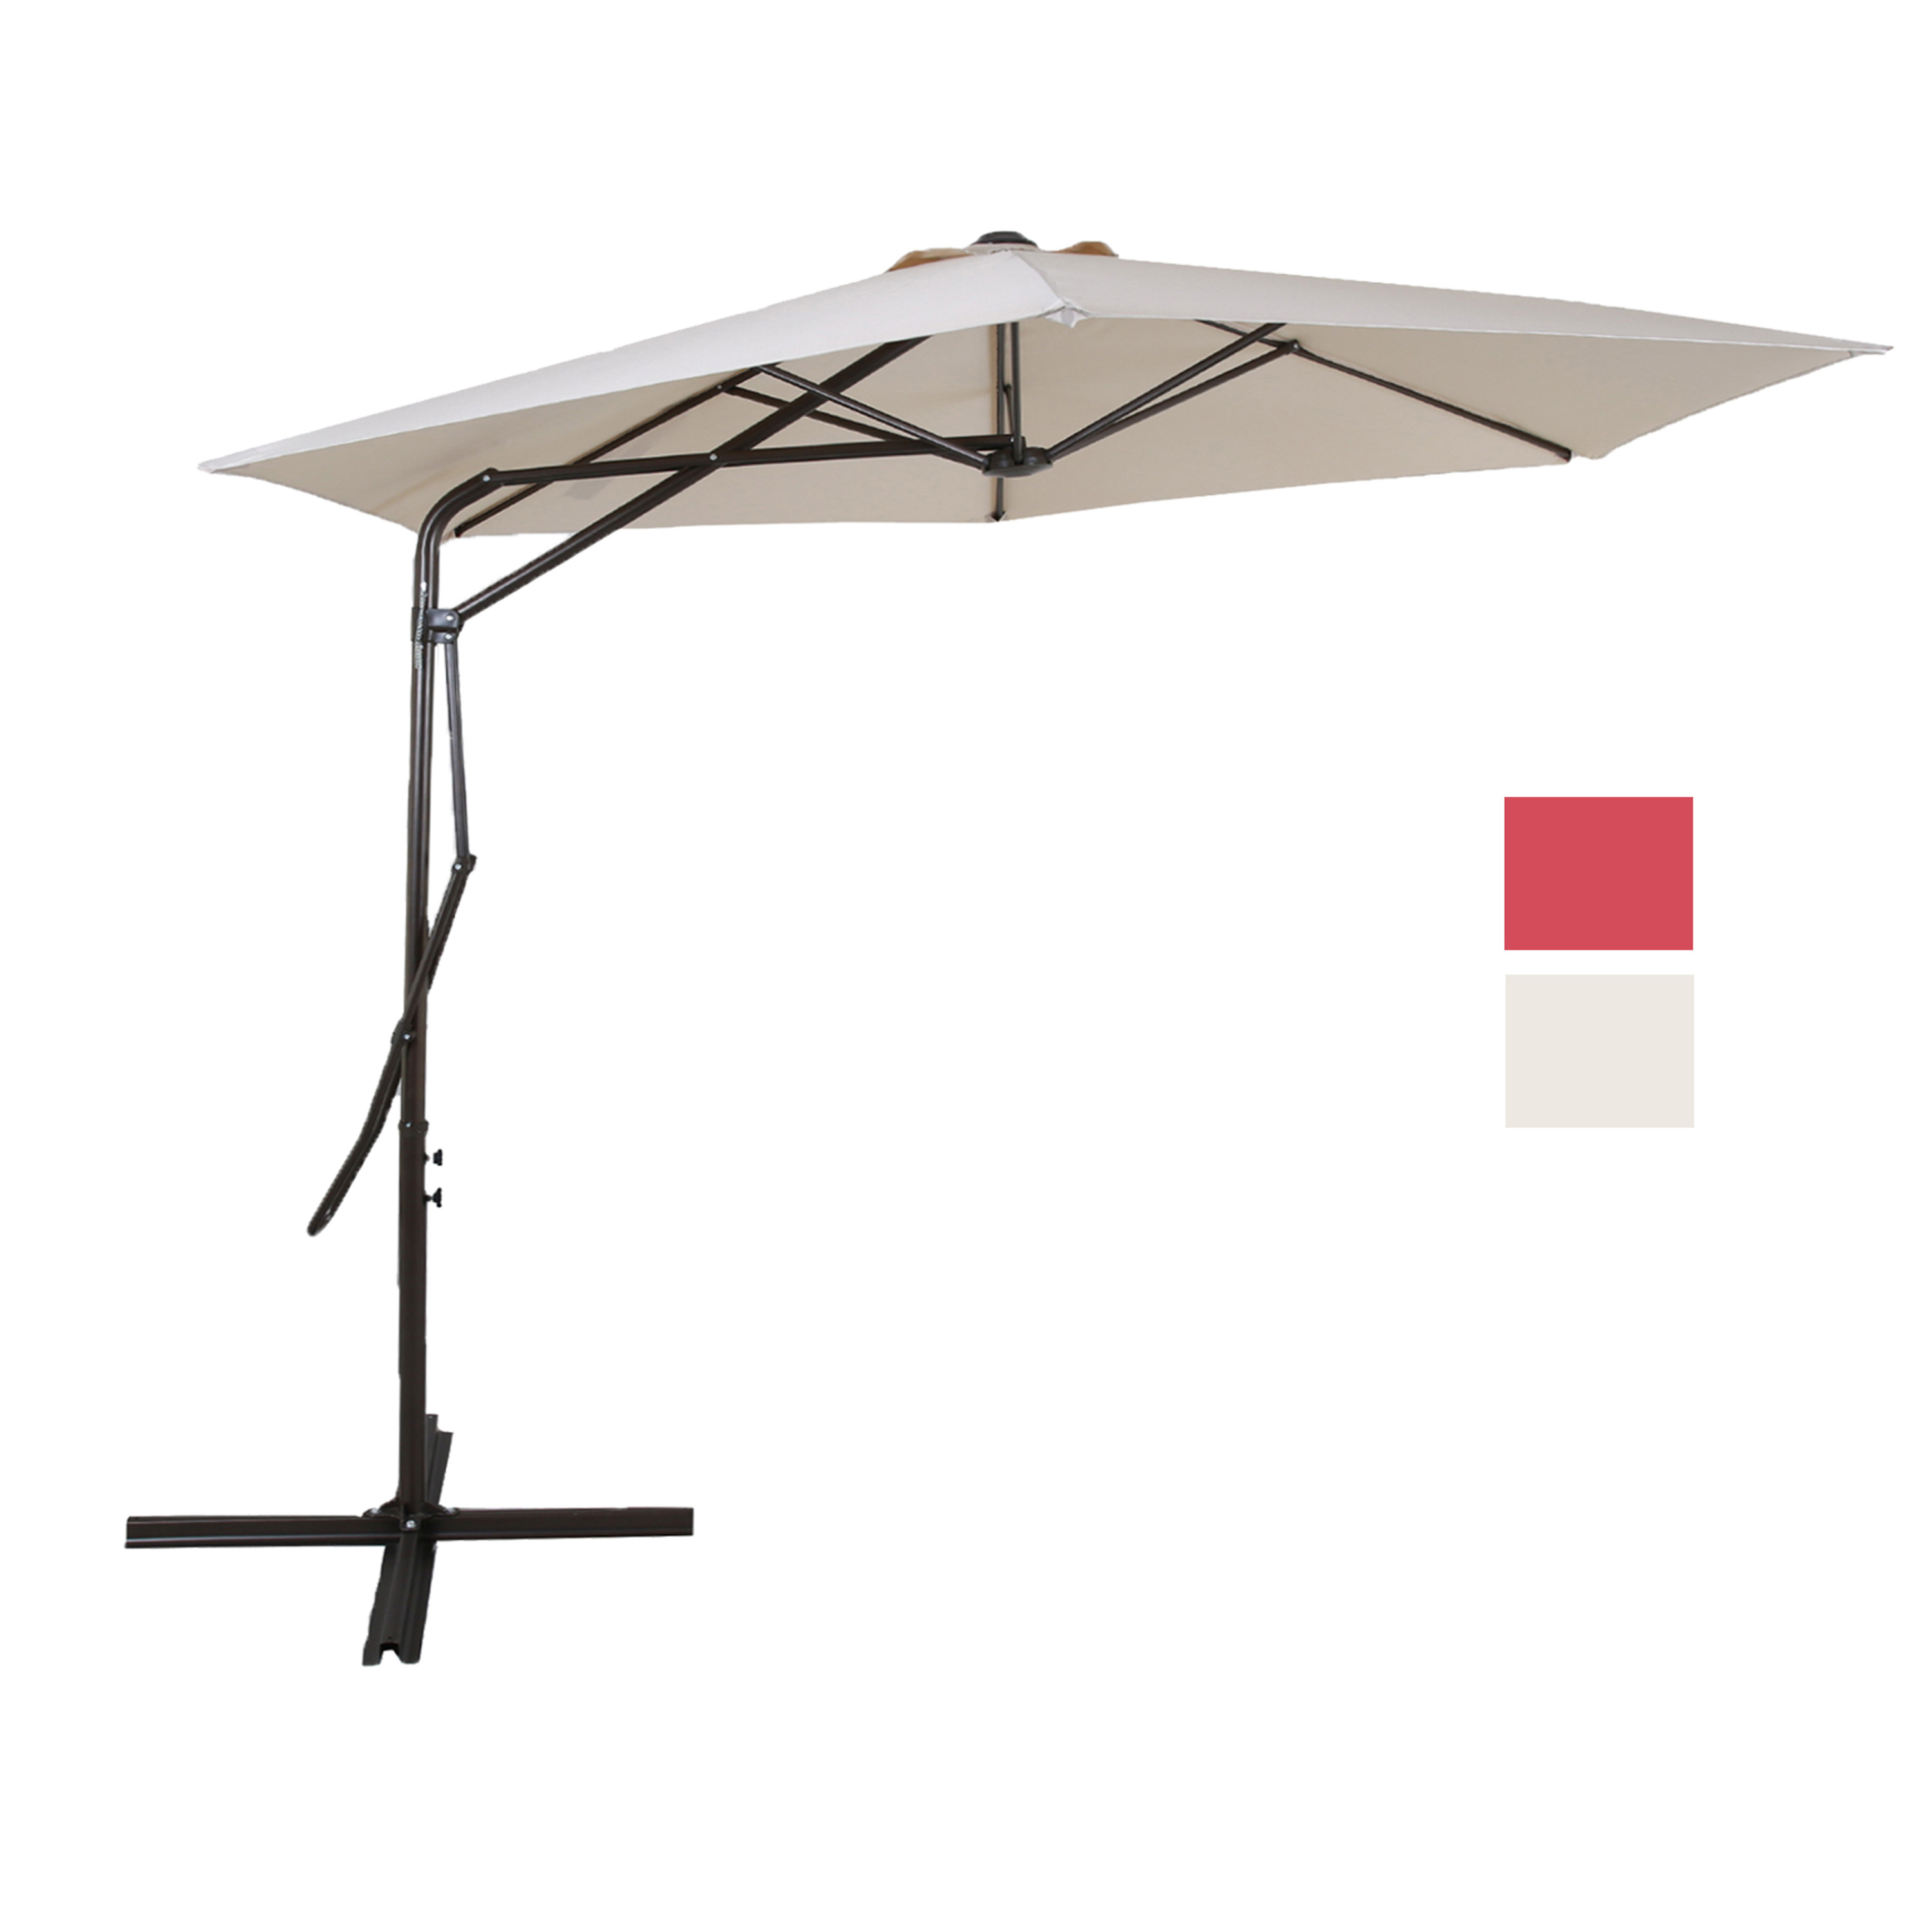 Superieur 9 Ft Cantilever Patio Umbrella With Strong Sturdy Hand Push Round,6 Steel  Ribs,UV Resistant,Beige